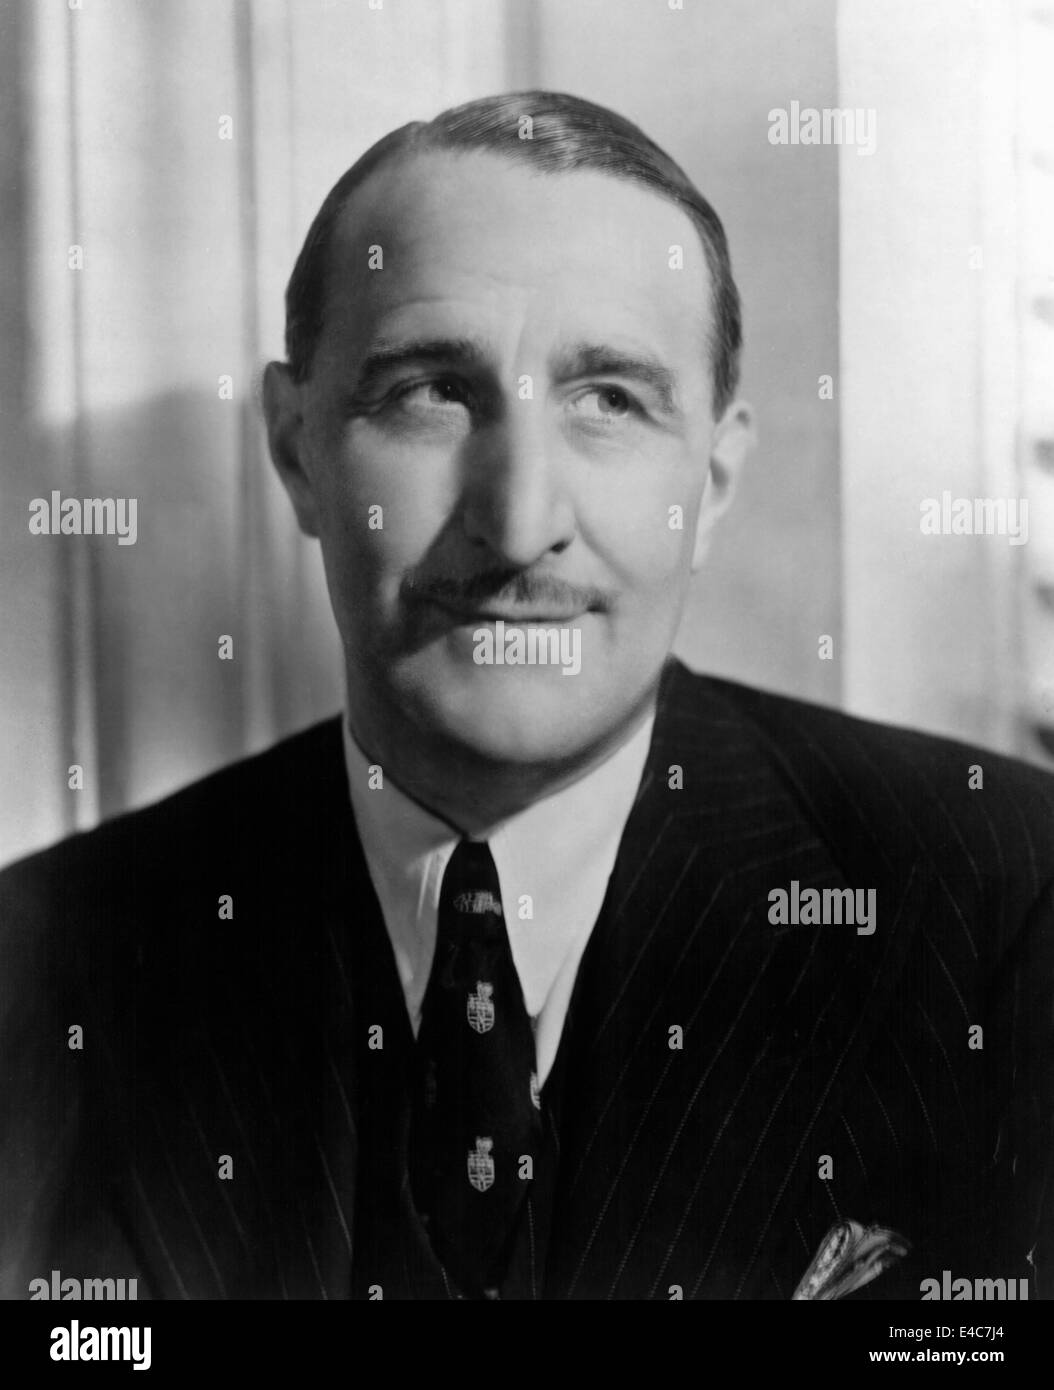 J. Arthur Rank,  British Industrialist and Head and Founder of the Rank Organization, Circa 1940's - Stock Image